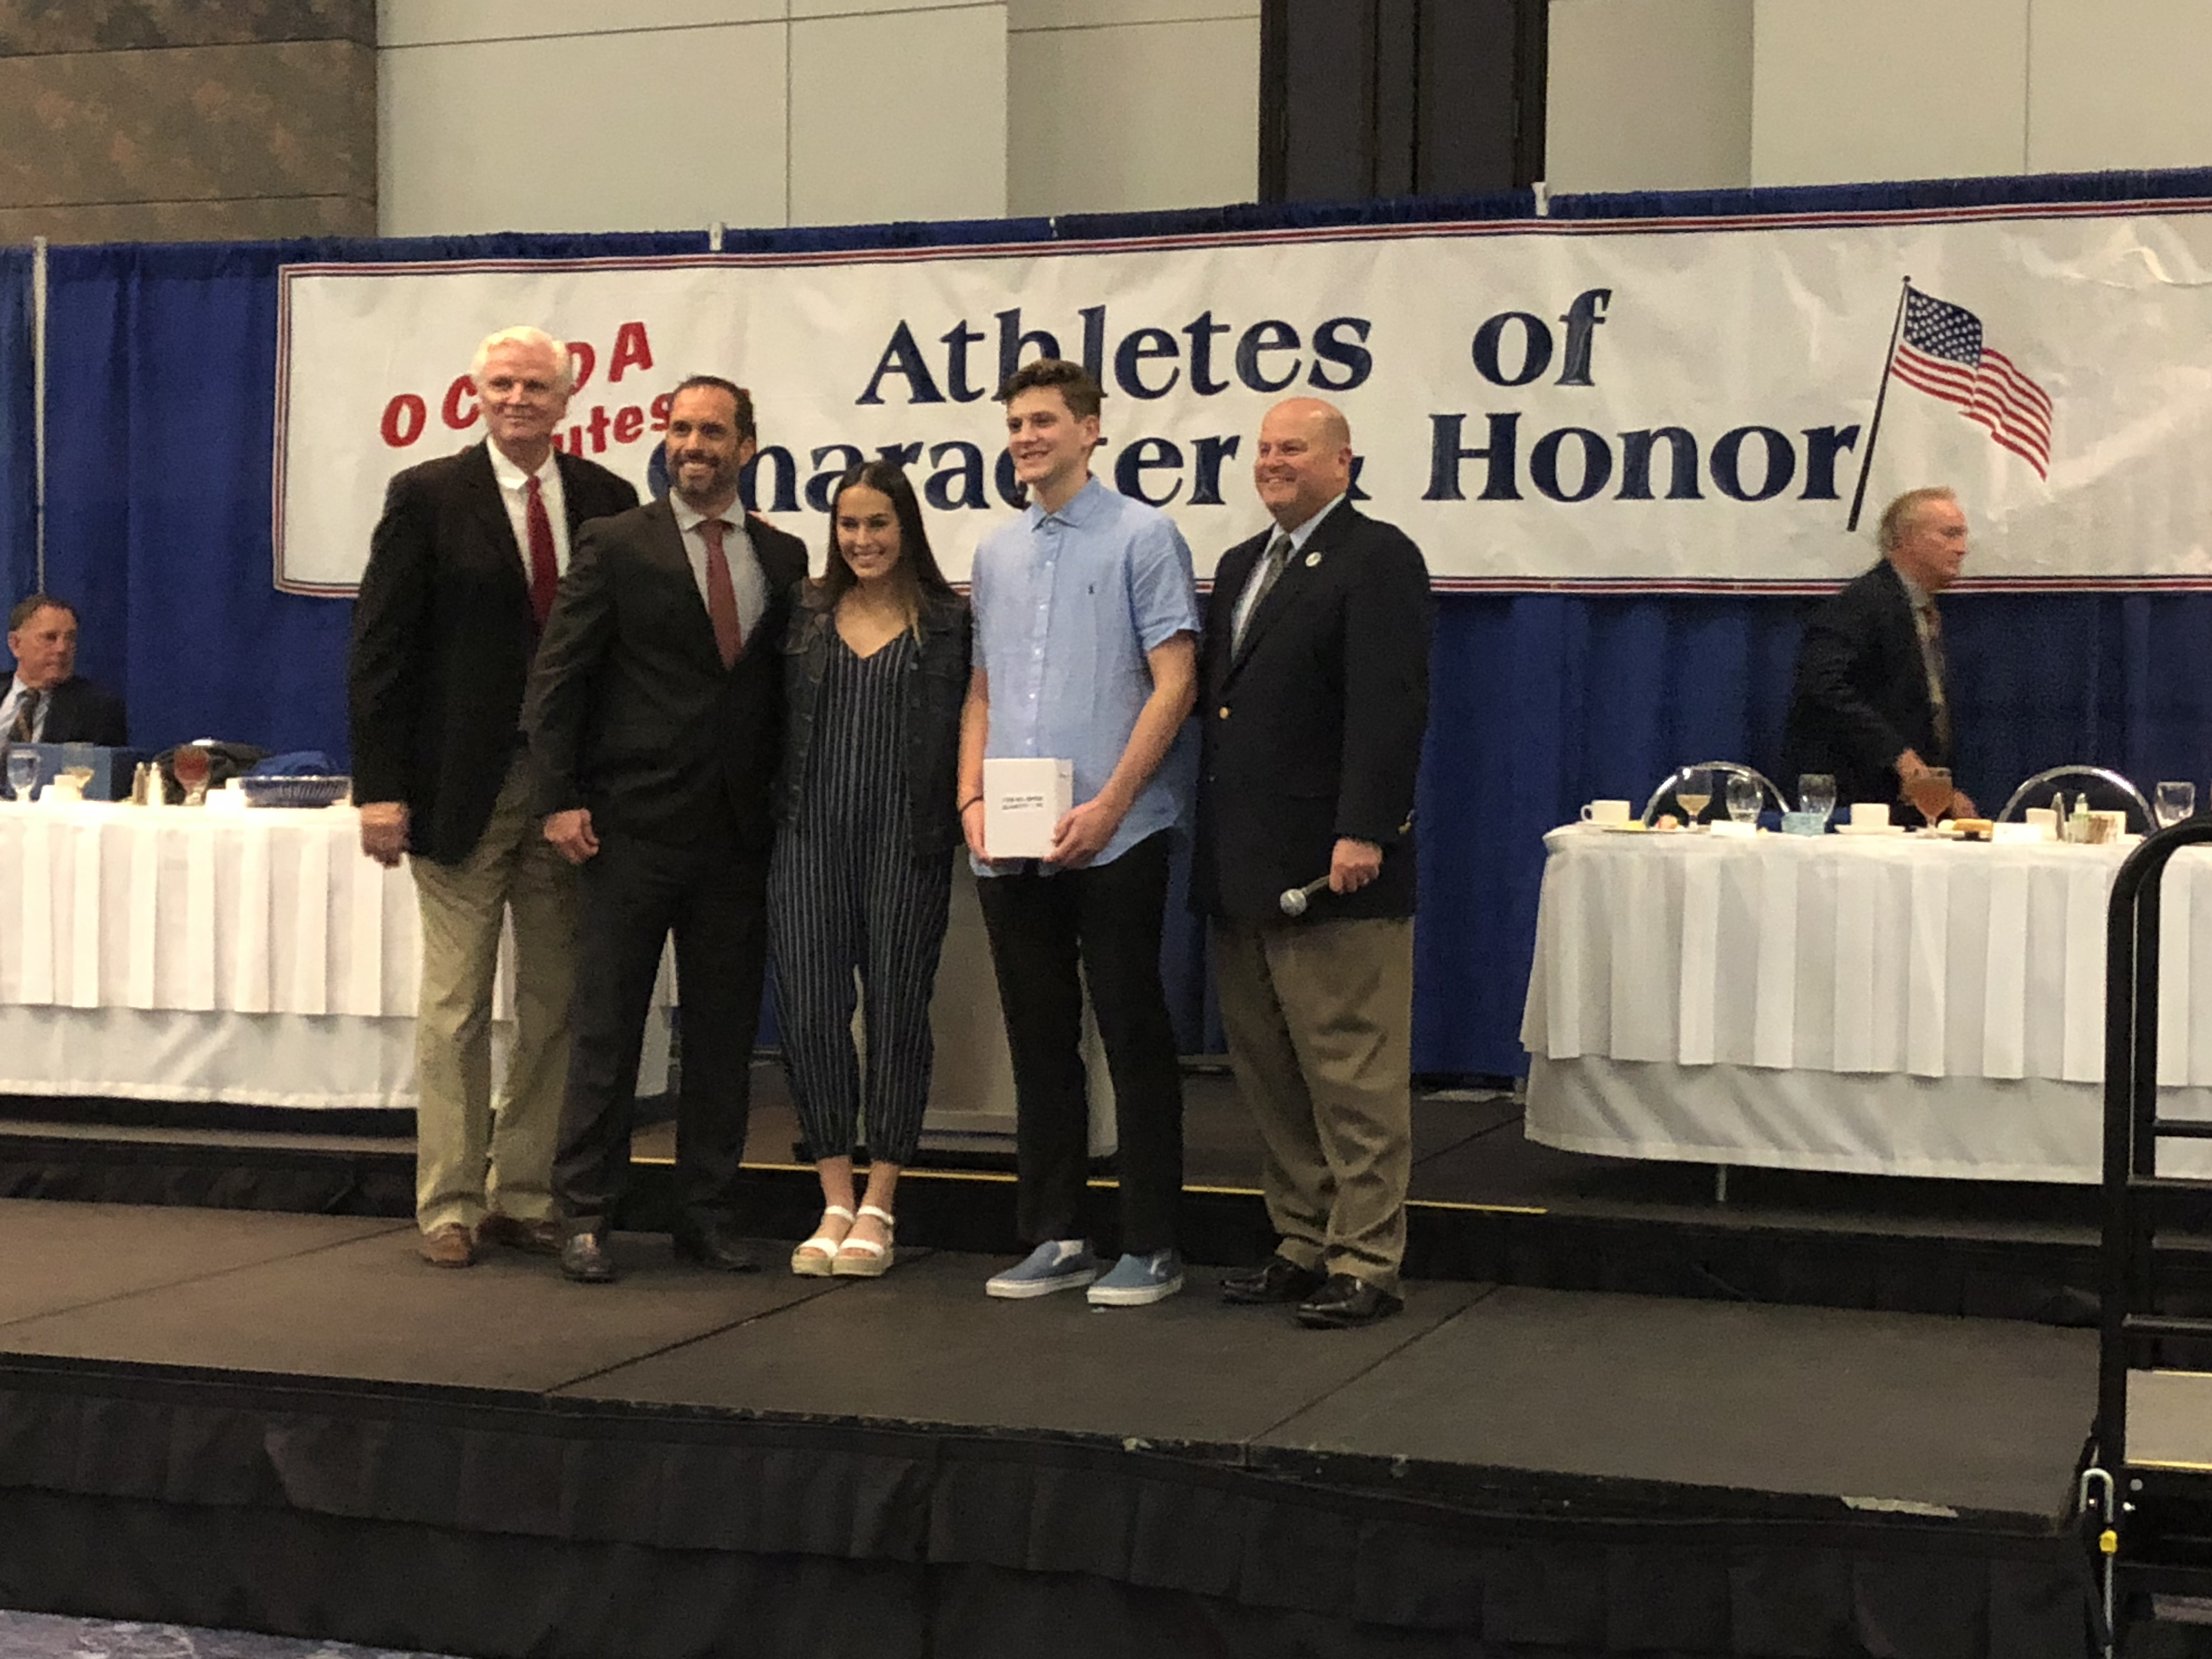 athletes of character ceremony